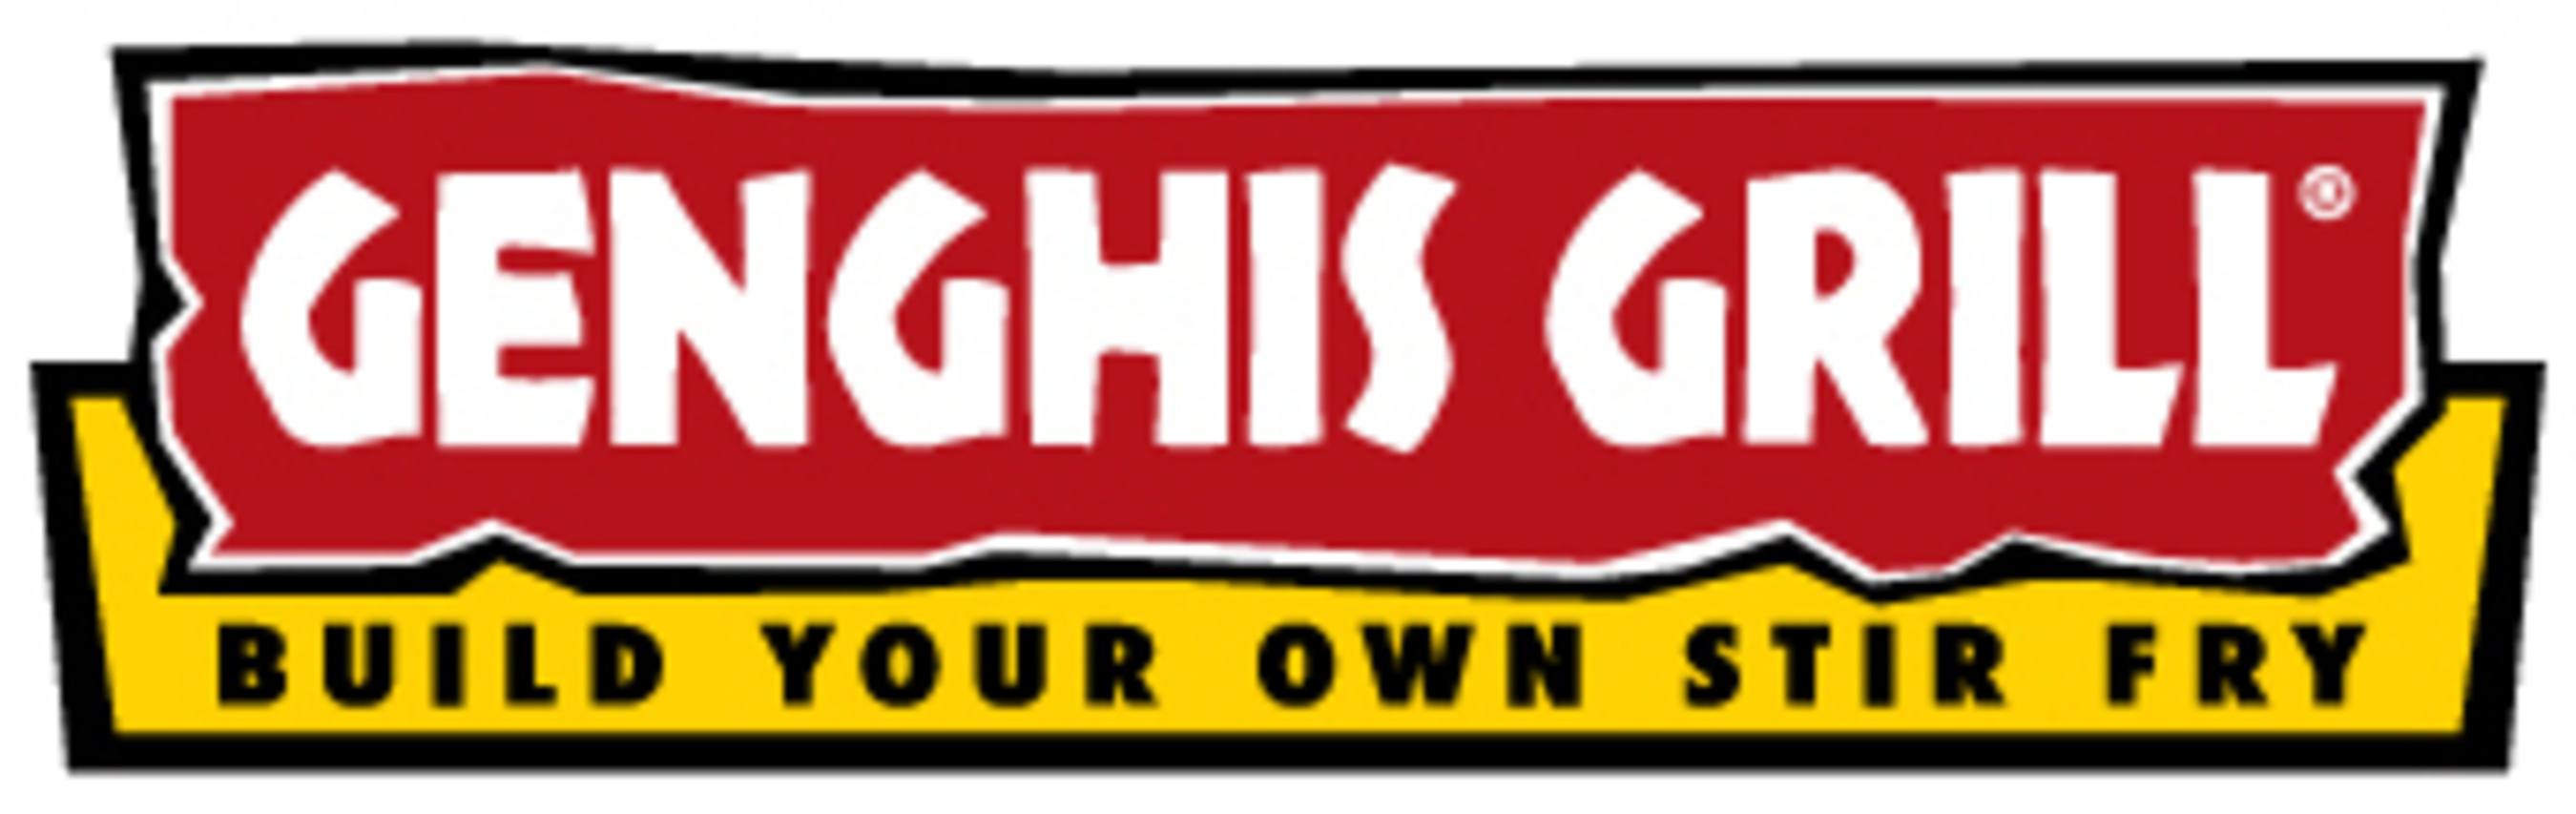 Genghis Grill has more than 100 locations nationwide (PRNewsFoto/Genghis Grill)